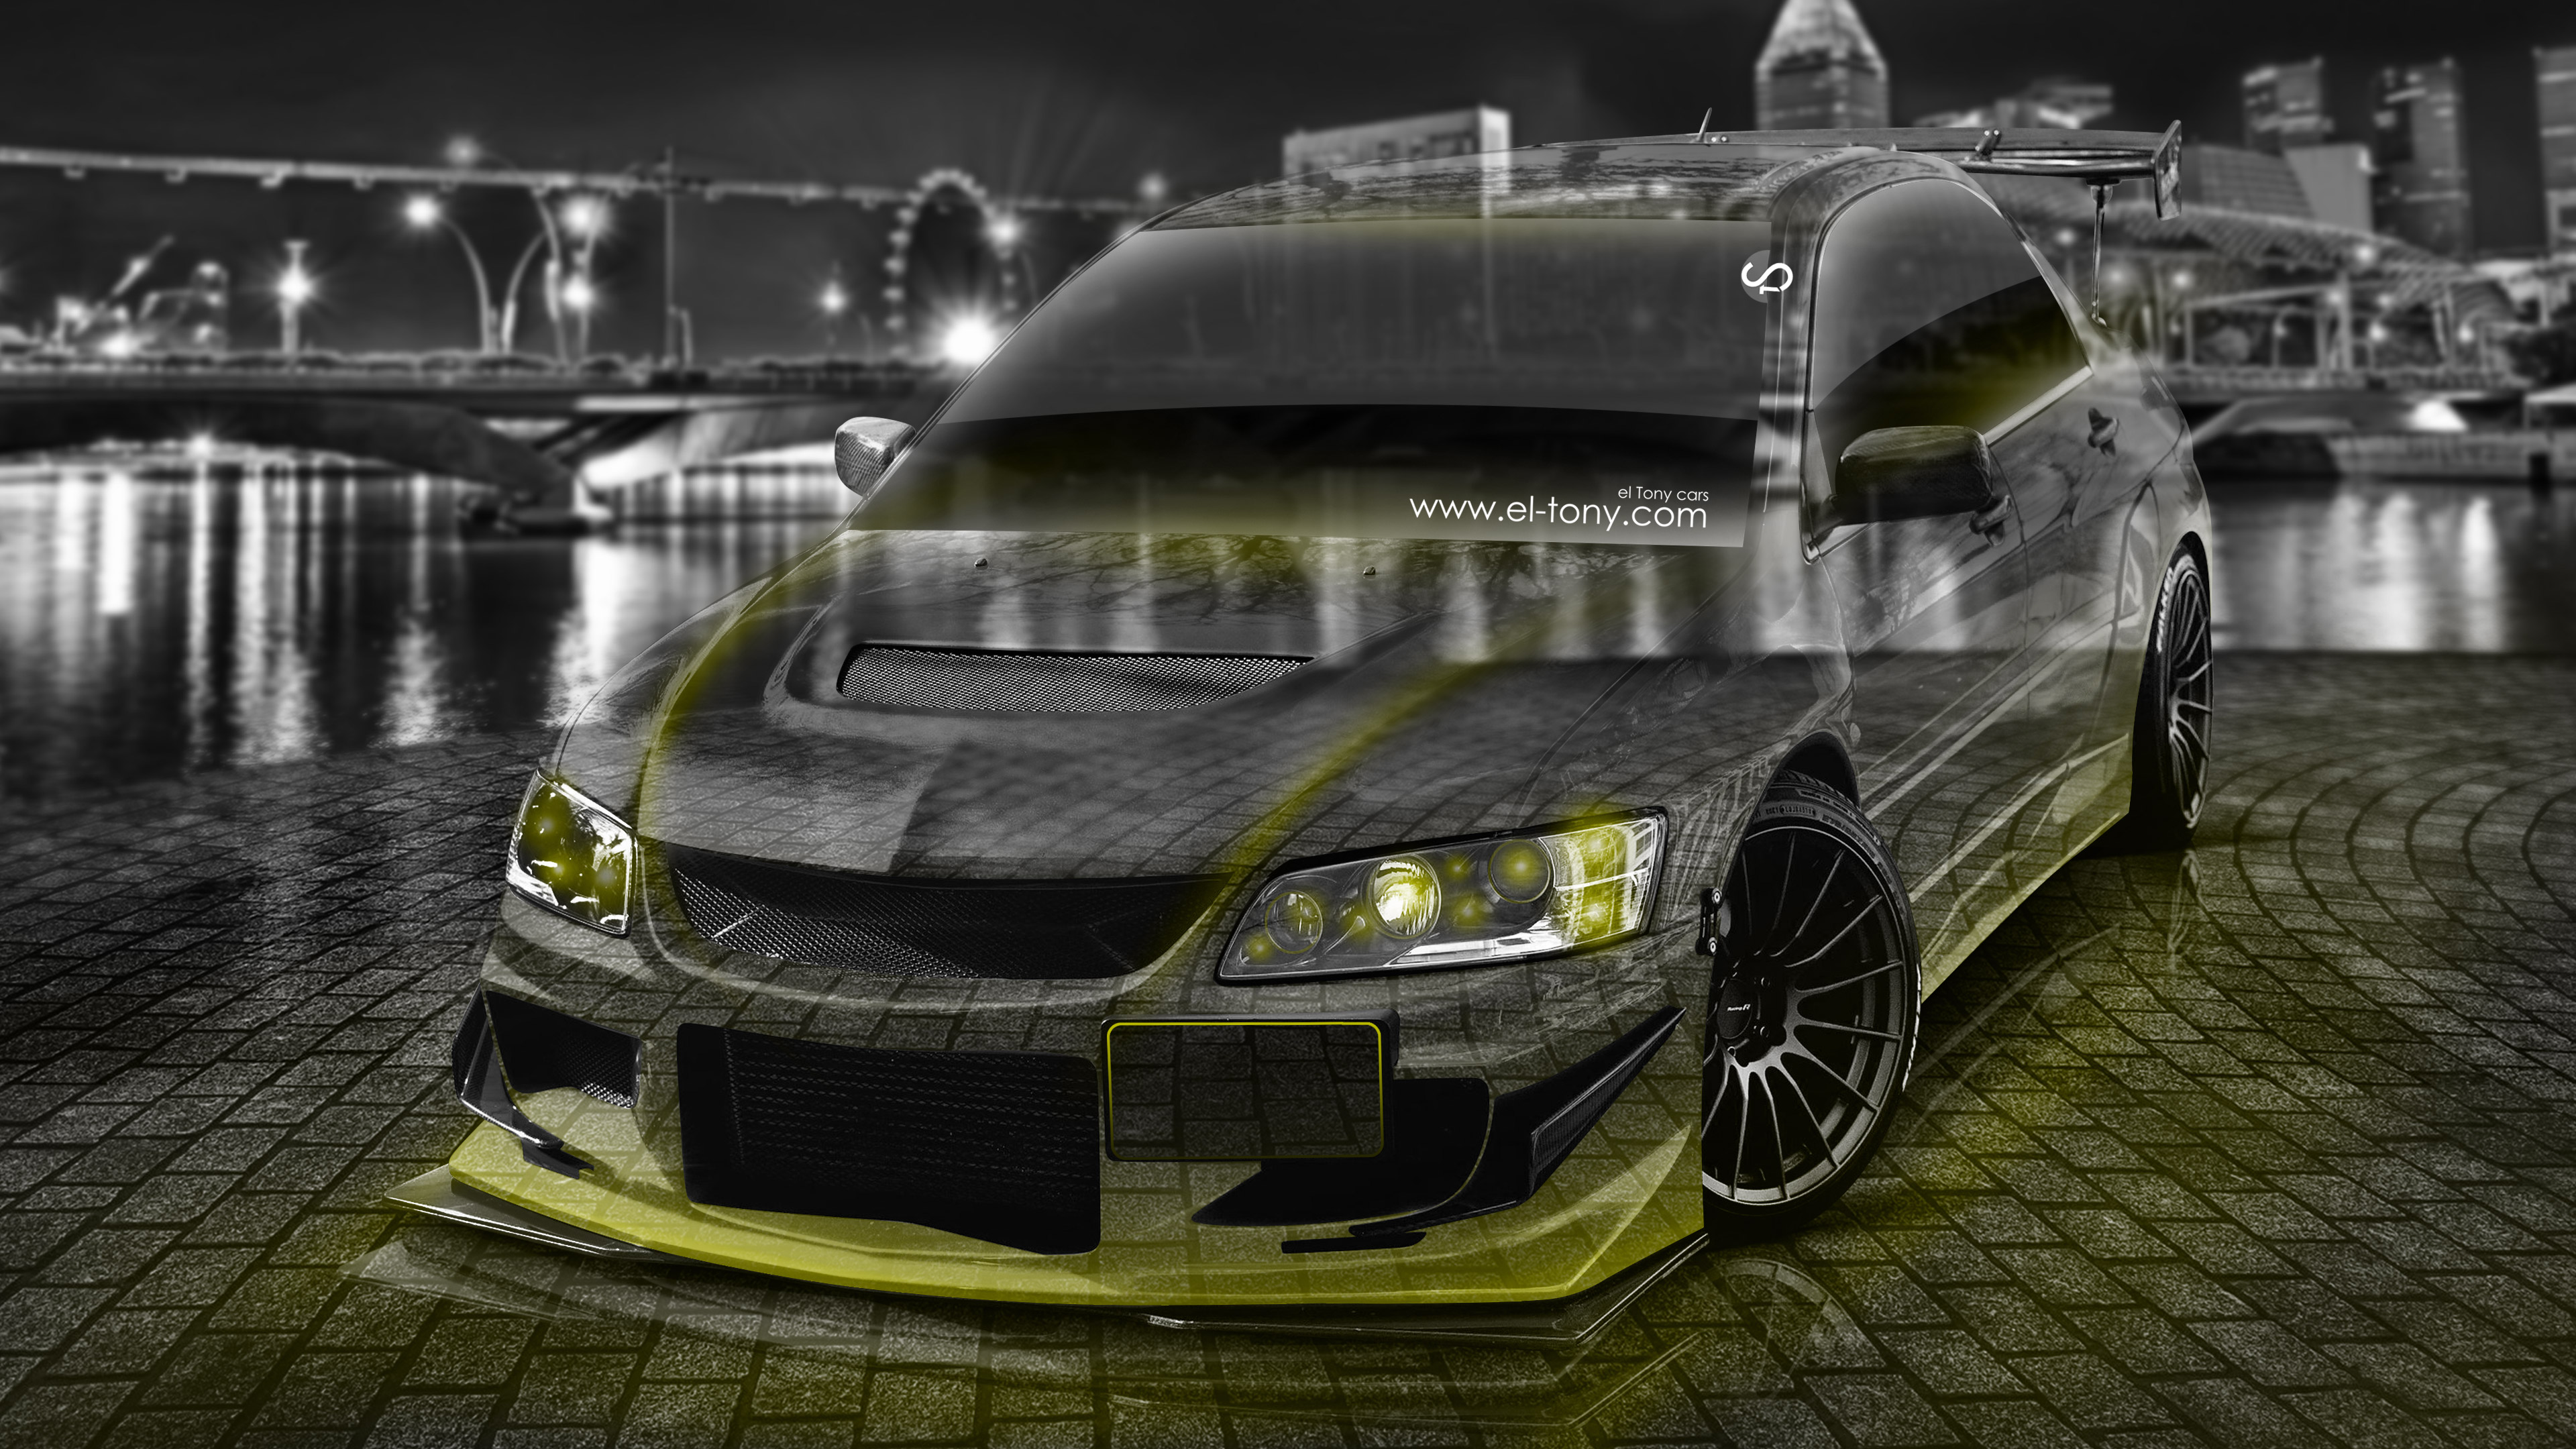 4K Mitsubishi Lancer Evolution JDM Tuning Crystal City Car .